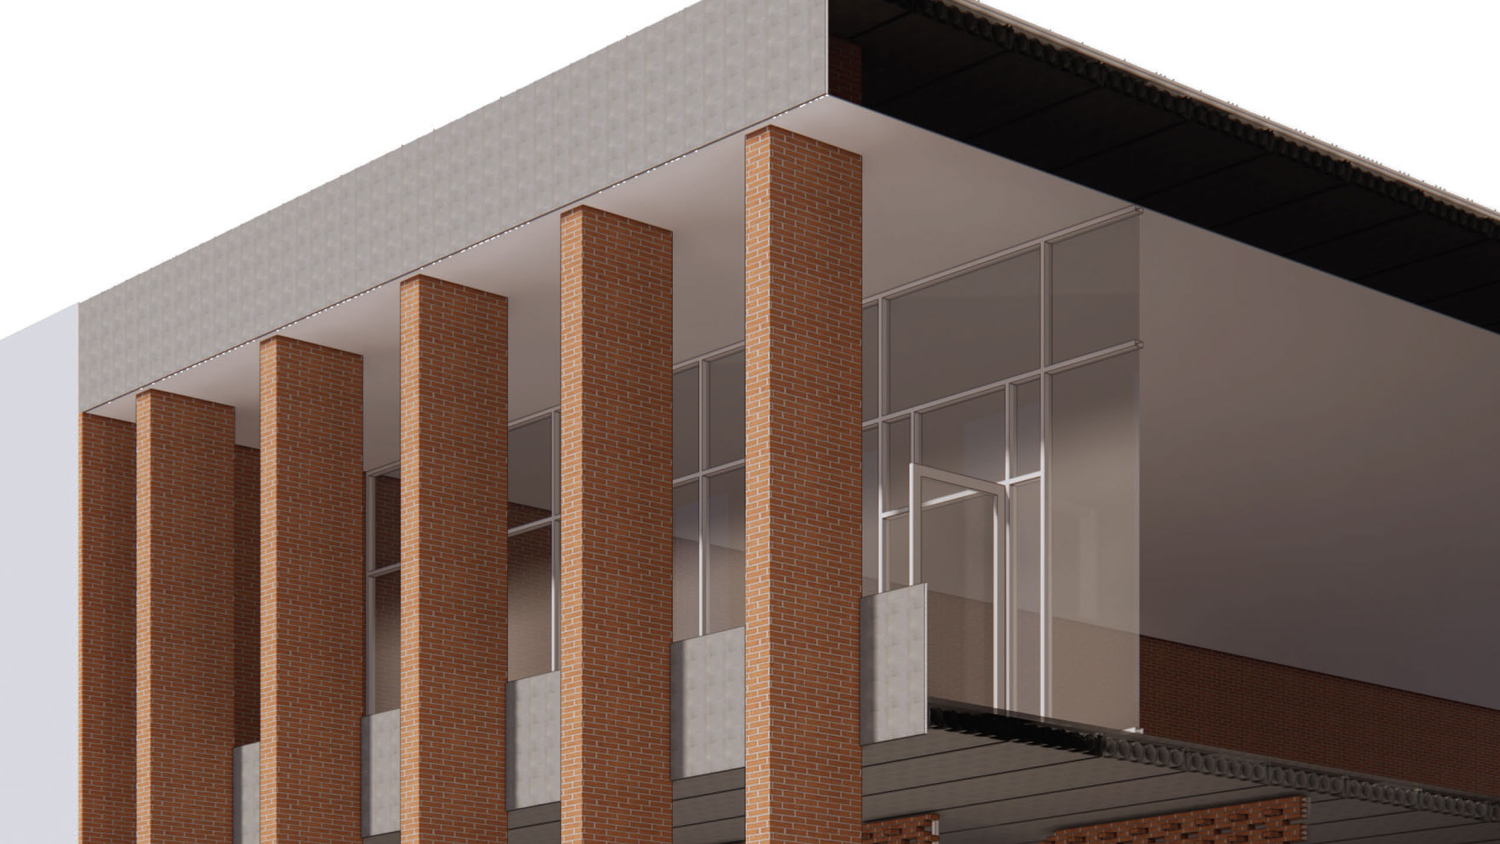 Winning student entry from the Sigmon Memorial Masonry Design Project